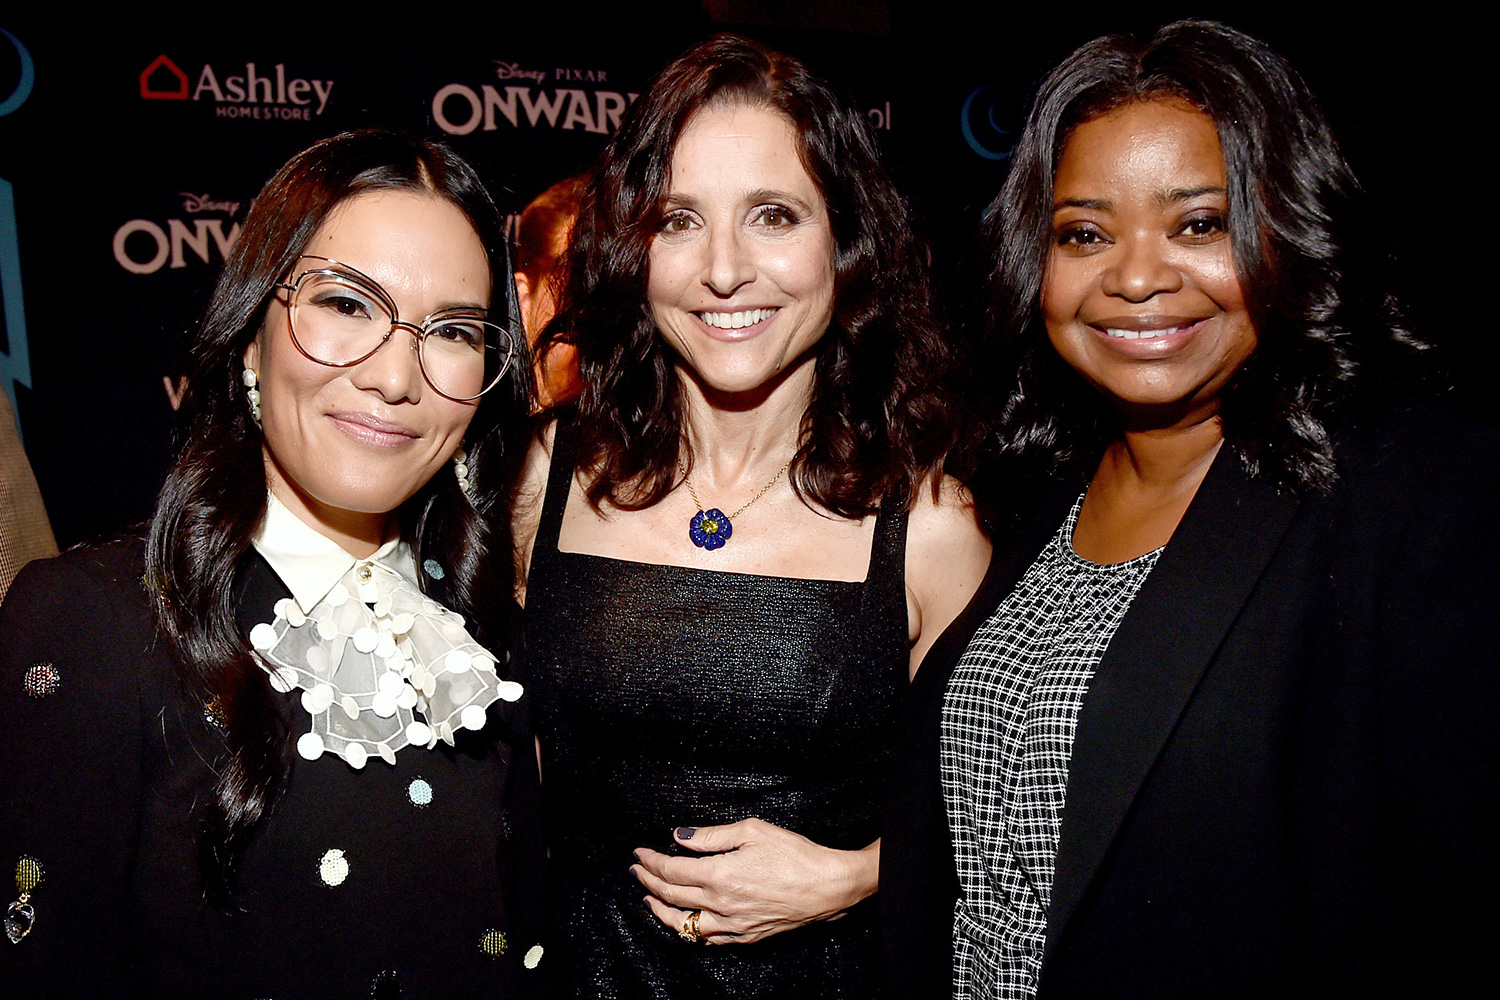 Ali Wong, Julia Louis-Dreyfus, and Octavia Spencer attend the world premiere of Disney and Pixar's ONWARD at the El Capitan Theatre on February 18, 2020 in Hollywood, California